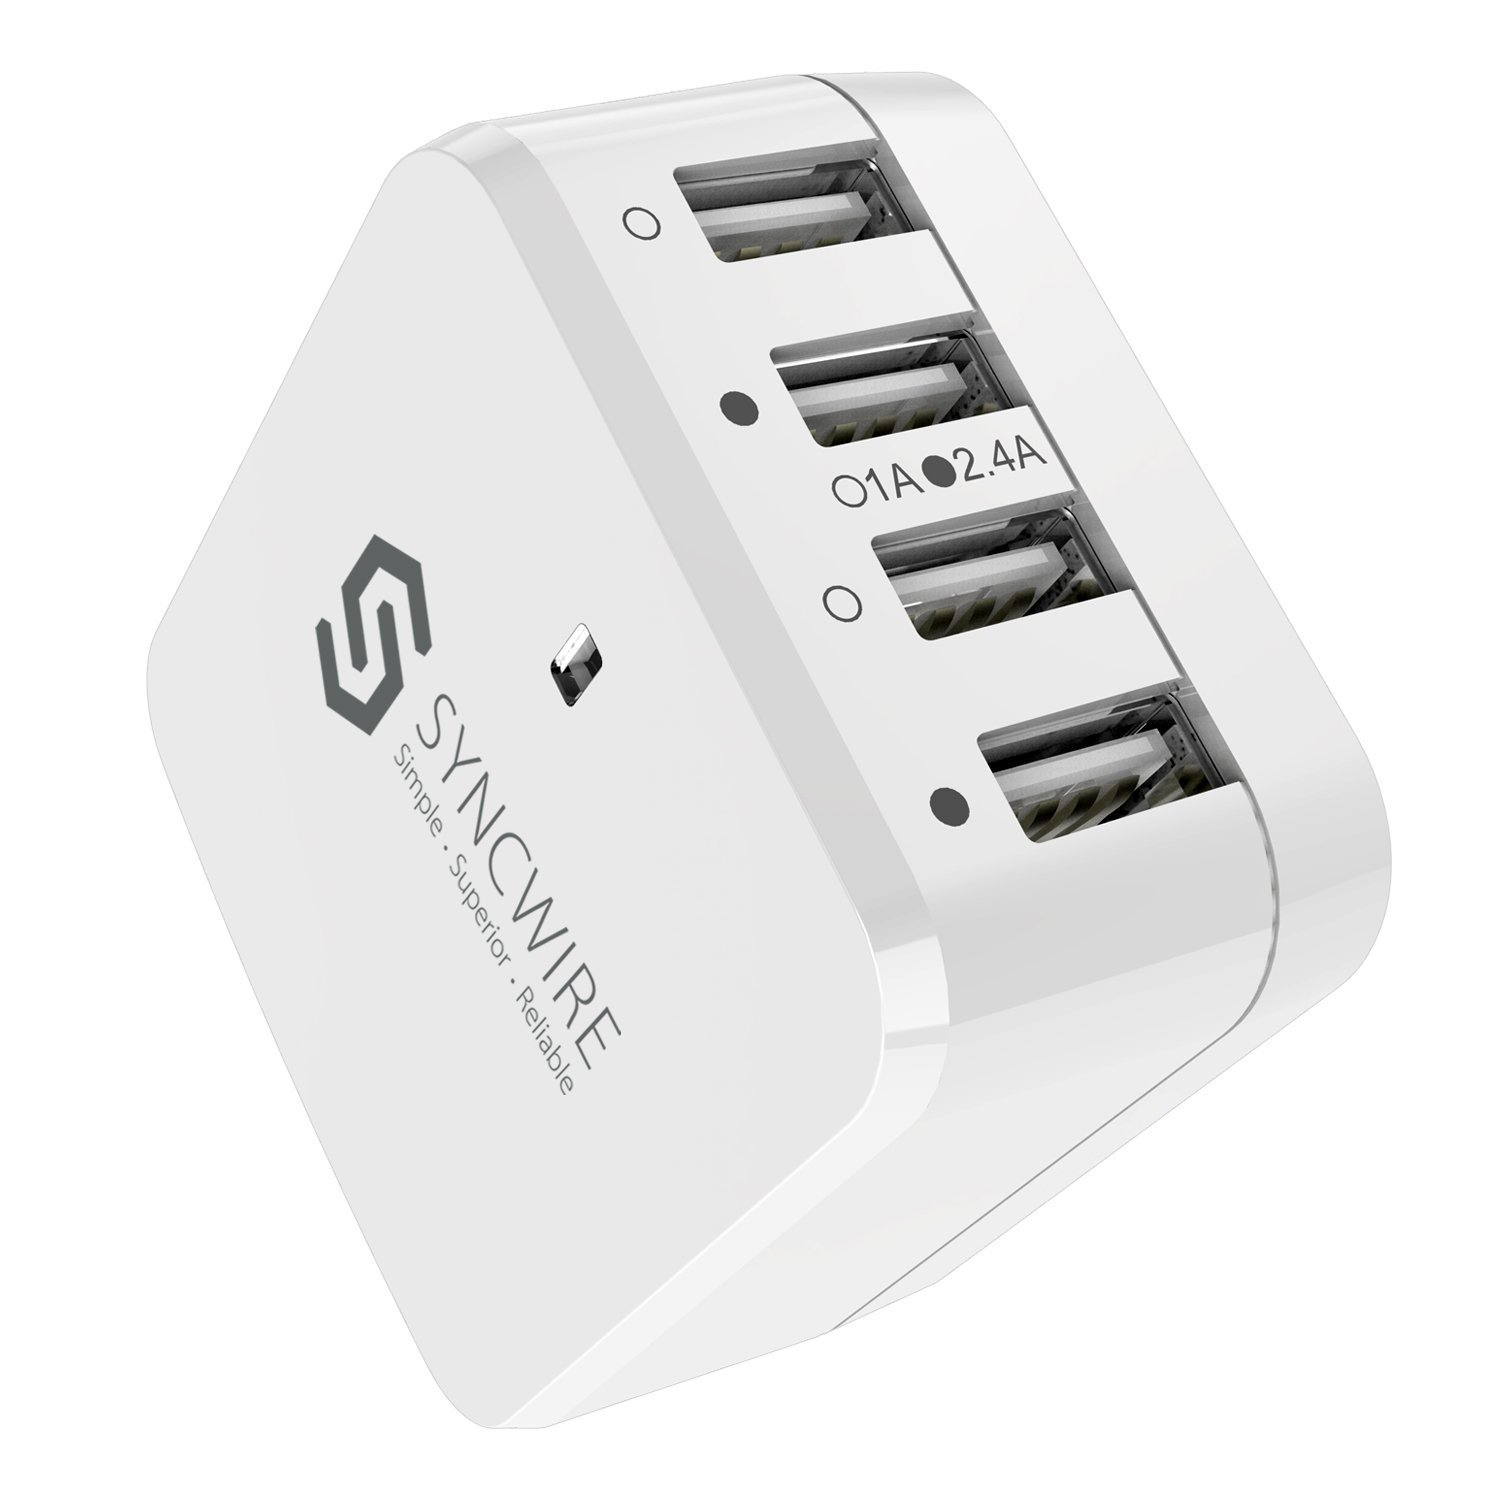 Usb Wall Charger Travel Plug Ul Certified Syncwire 34w  Port Fast Charger With Us Uk Eu Adapter For Apple Iphone Ipad Samsung Galaxy Note Series